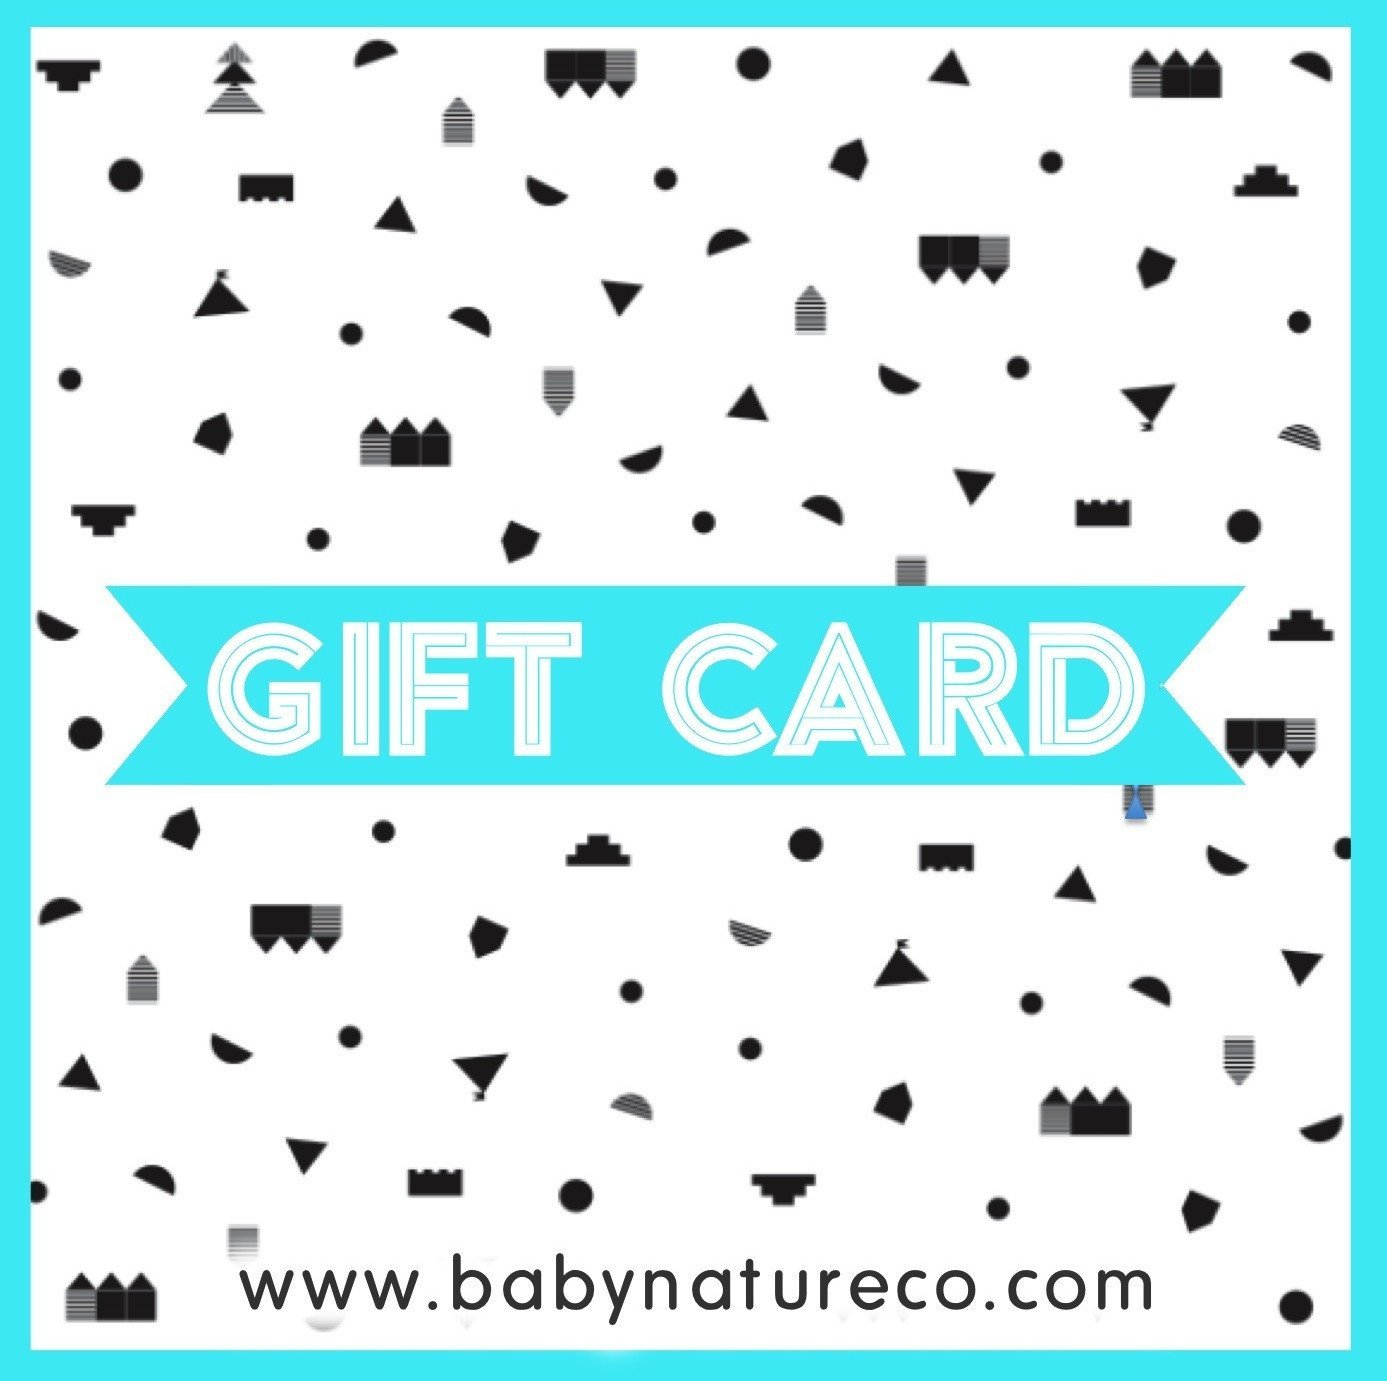 E-Gift Card (Indulgence)